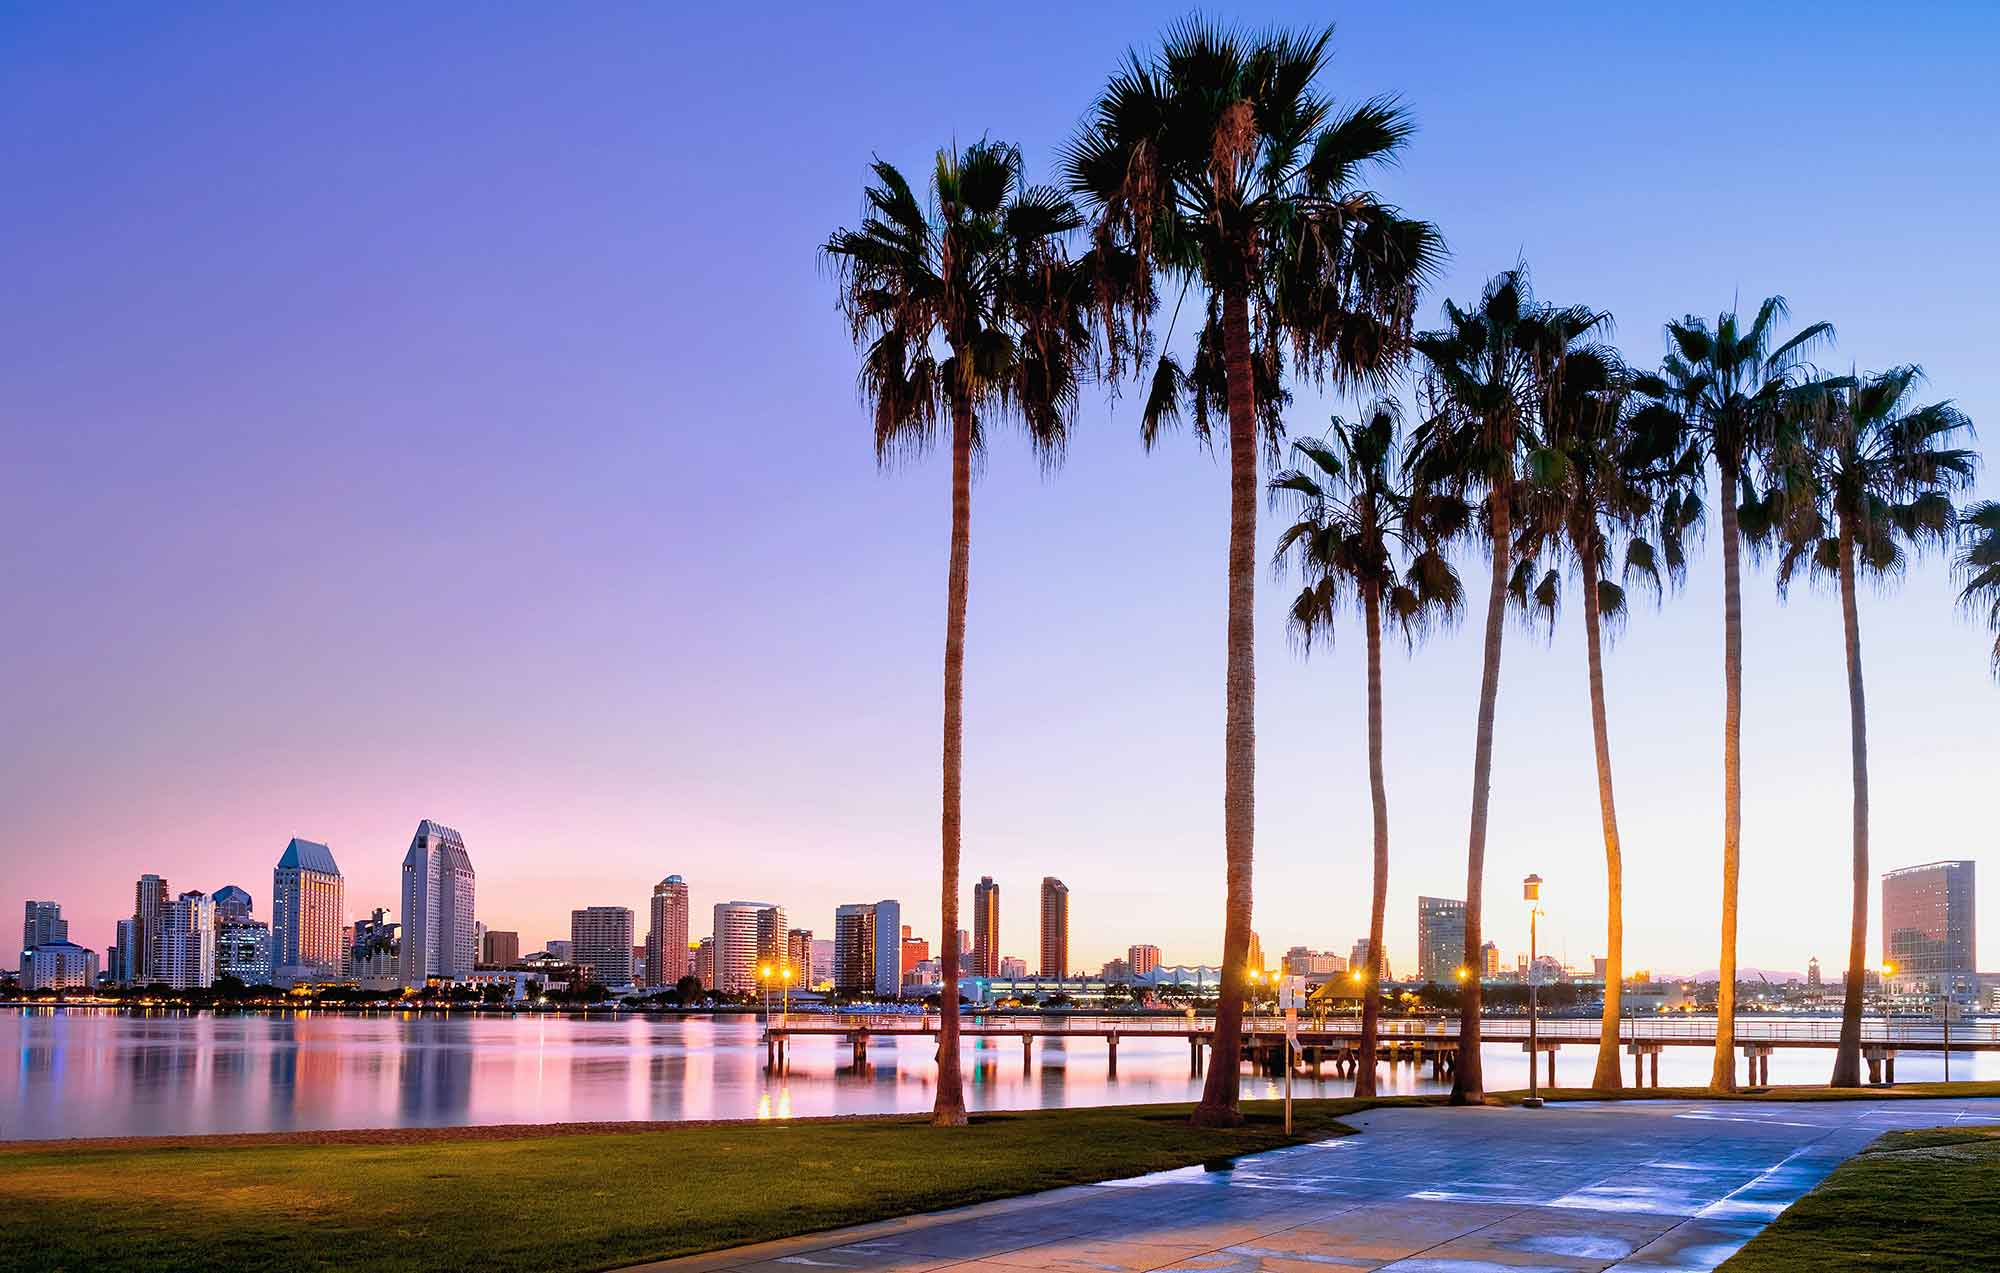 A view of san diego cityscape from a park with palm trees.